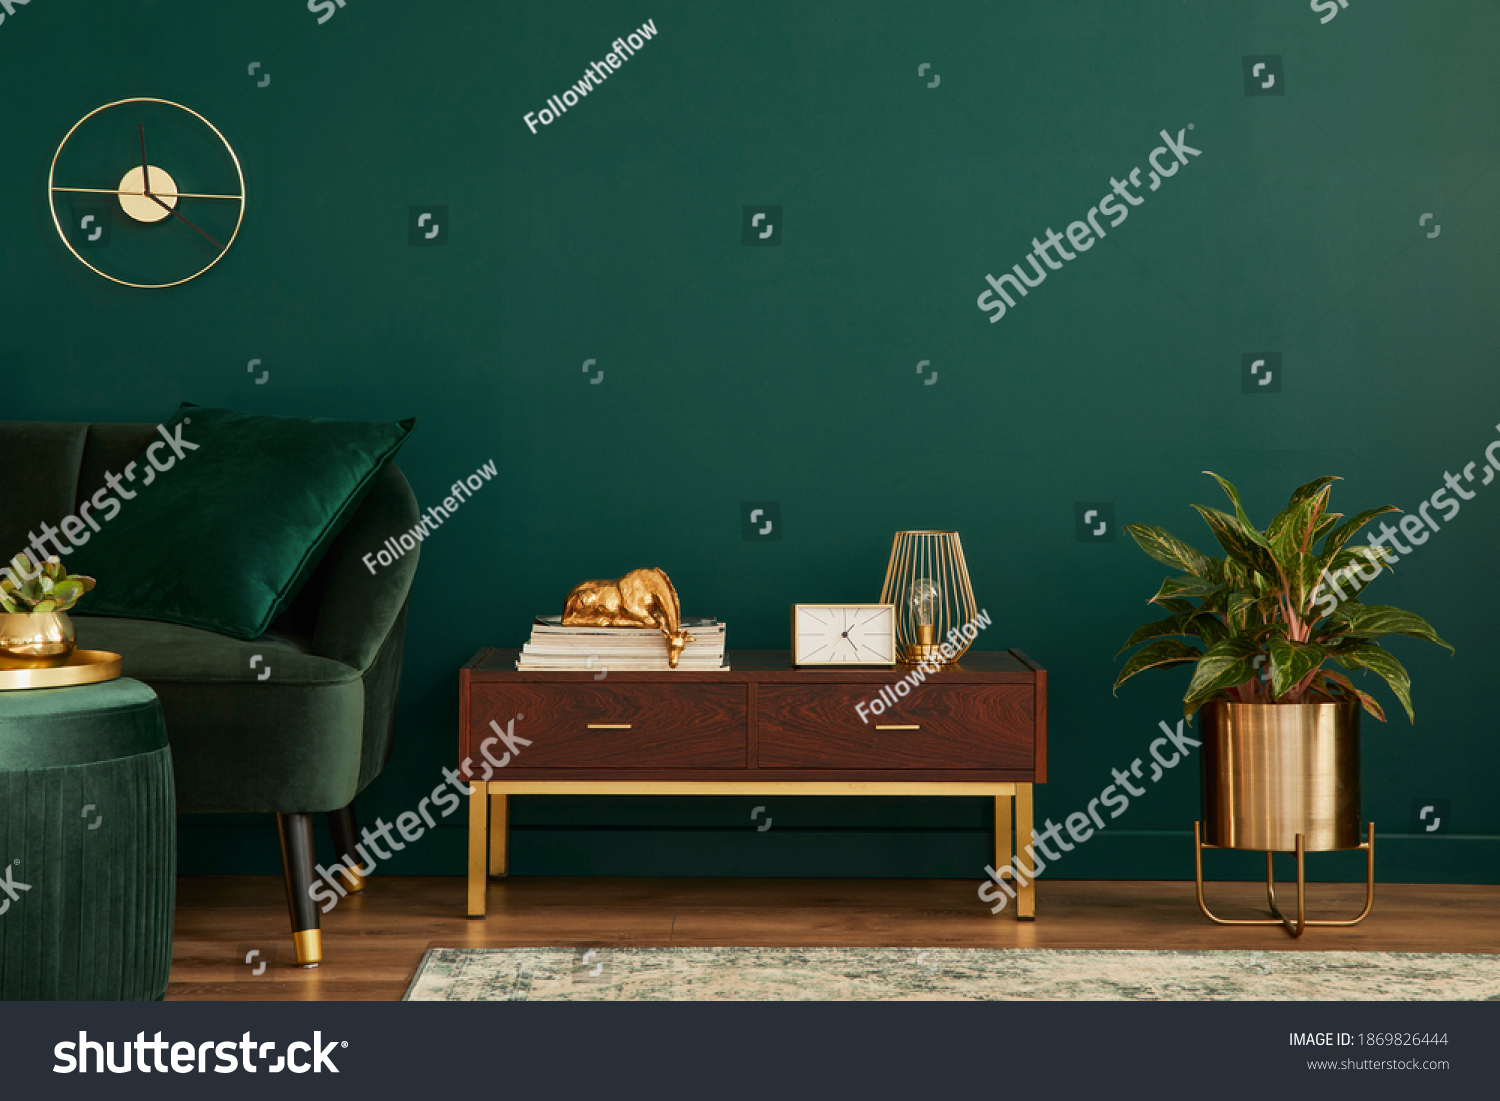 Luxury interior with stylish velvet sofa, wooden commode, pouf, plants, carpet, gold decoration, copy space and elegant personal accessories. Modern living room in classic house. Template. #1869826444